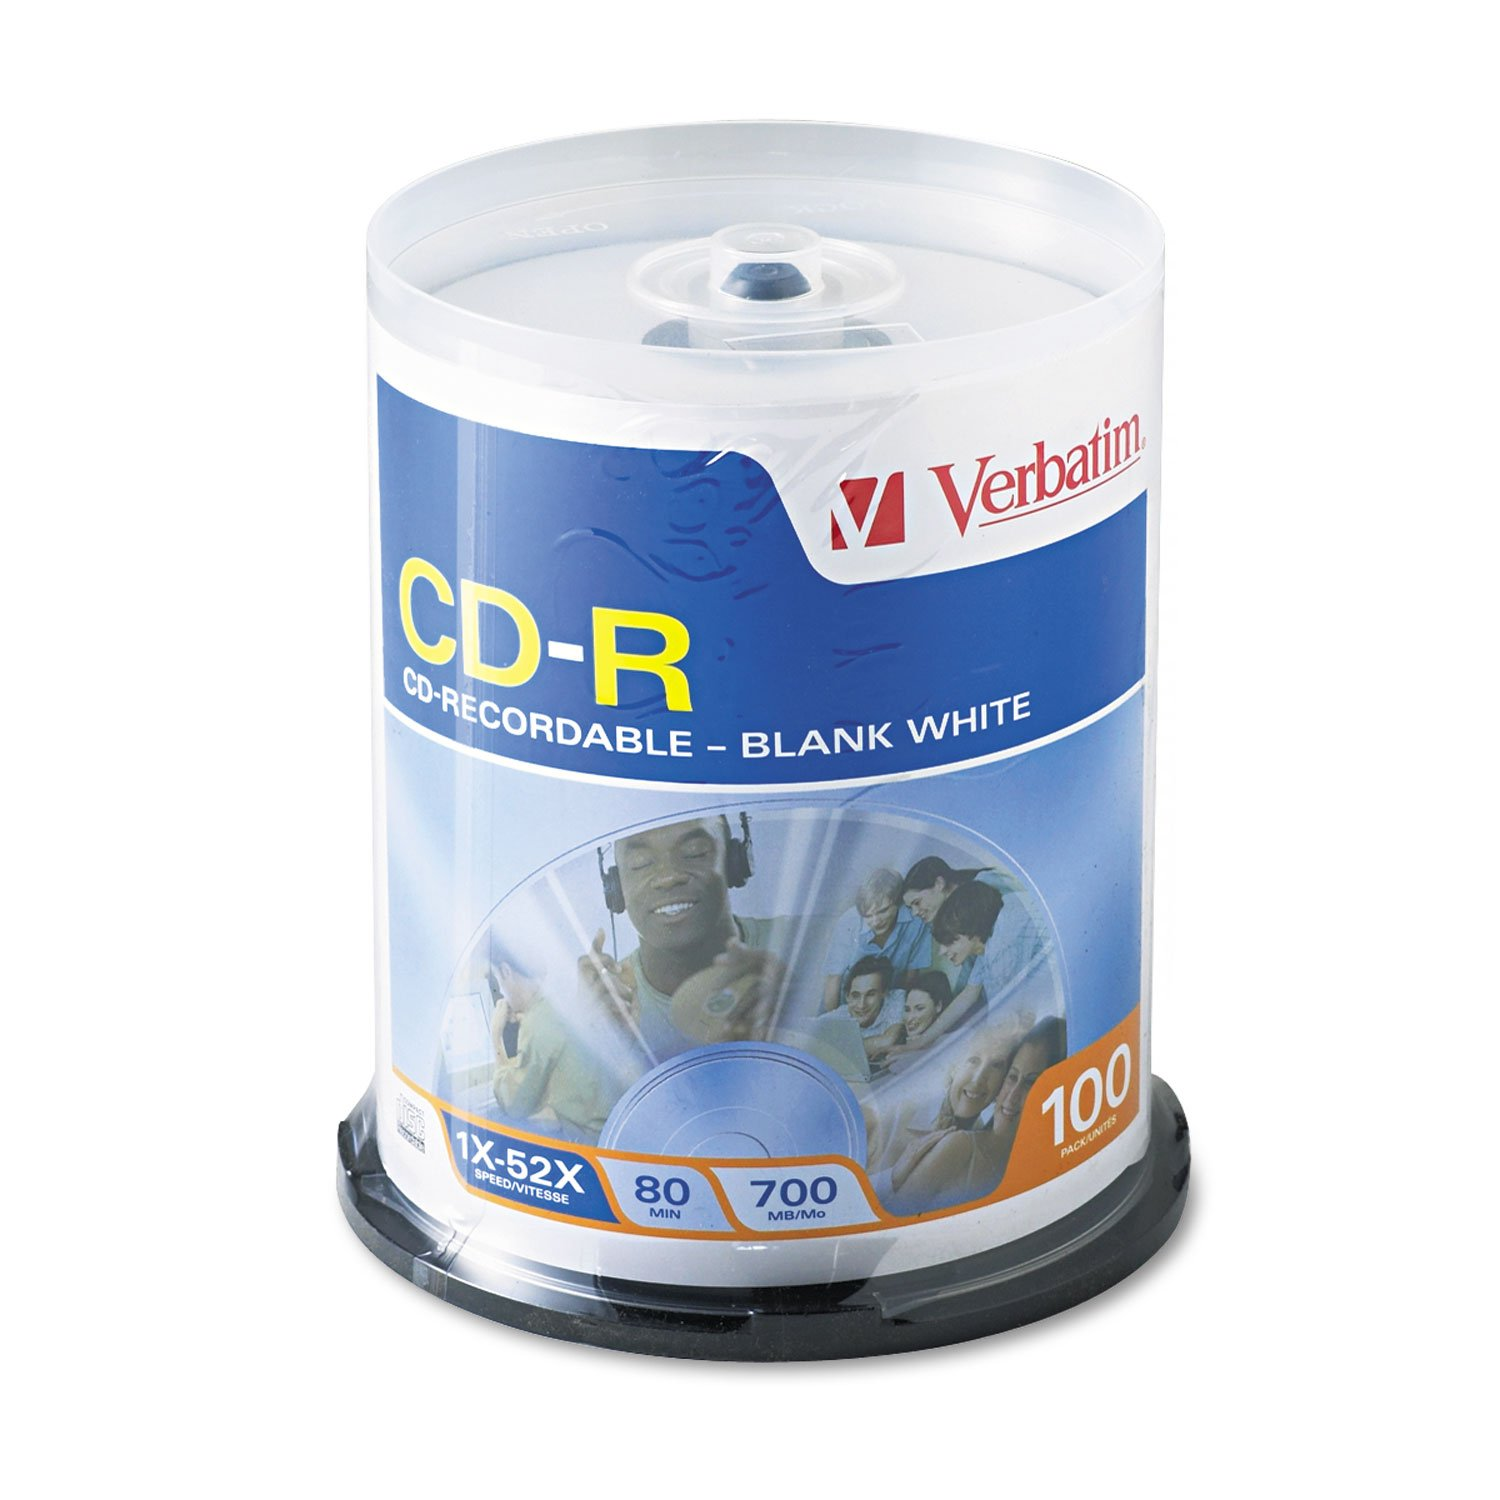 Verbatim 100/Pk 700MB 52x Write-Once CD-R With Non-Printable White Surface